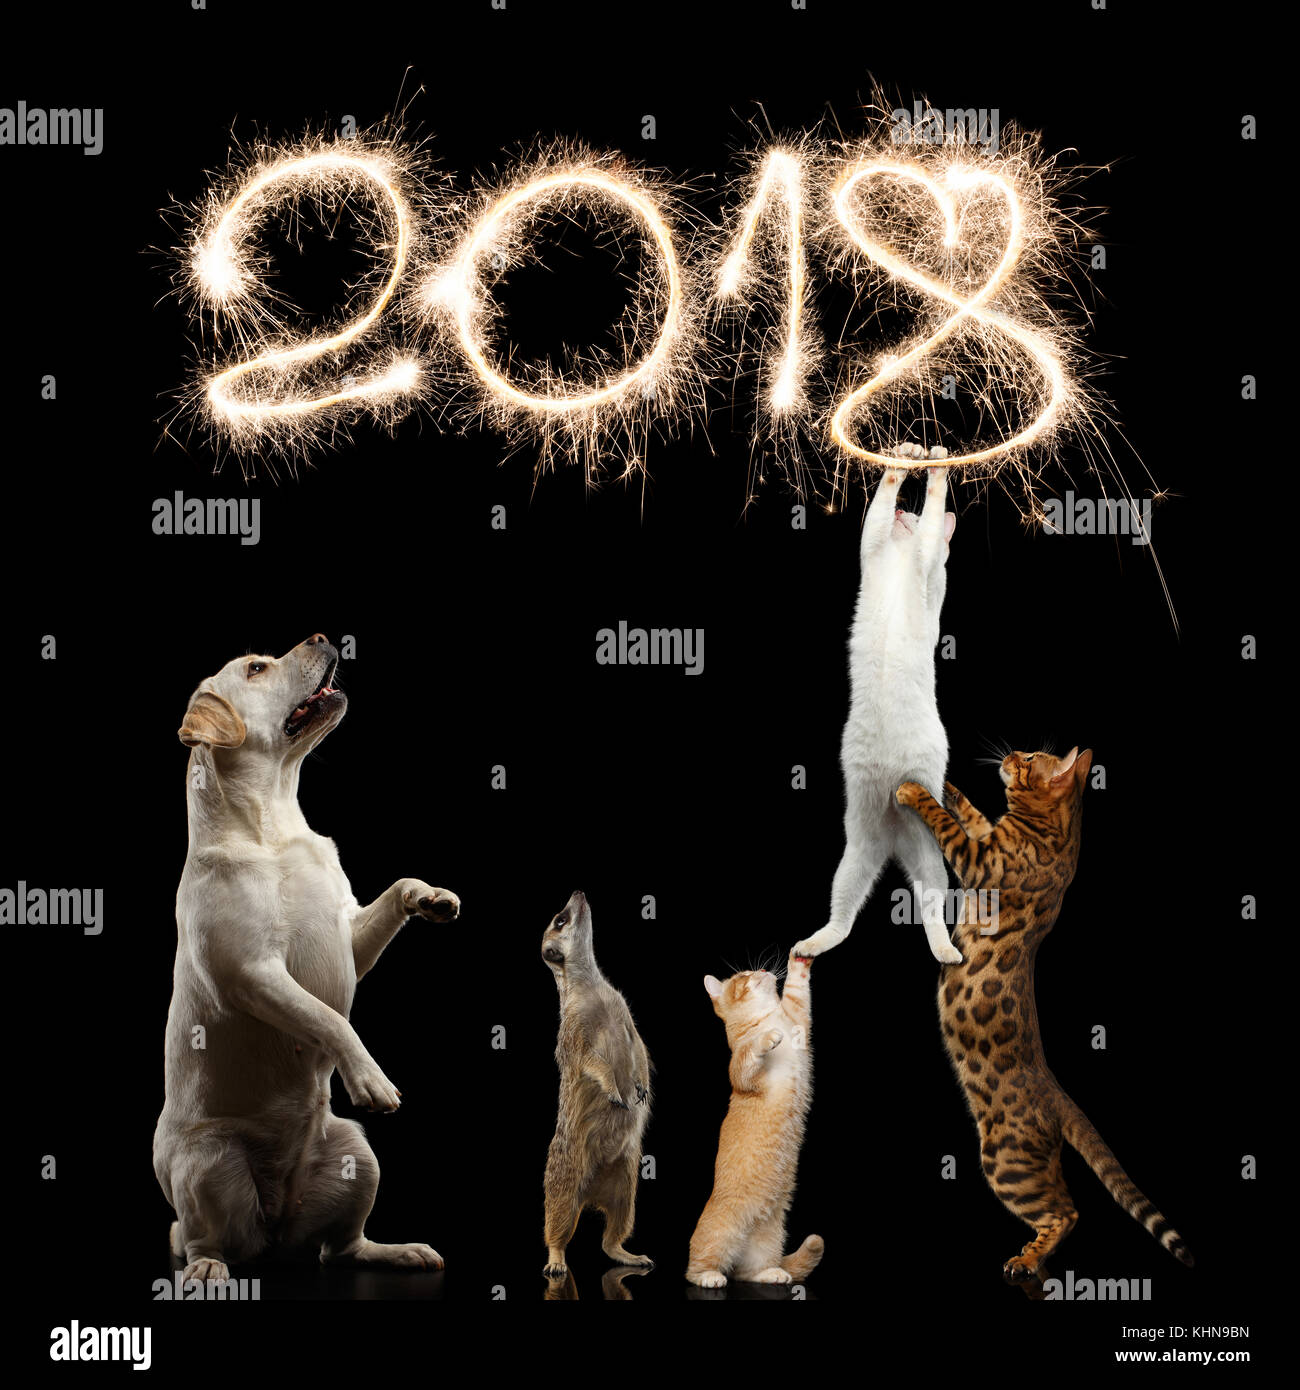 Cats, Dog and meerkat preparing for the new 2018 year, decorate sparklers digits or kitties want to steal Christmas, - Stock Image